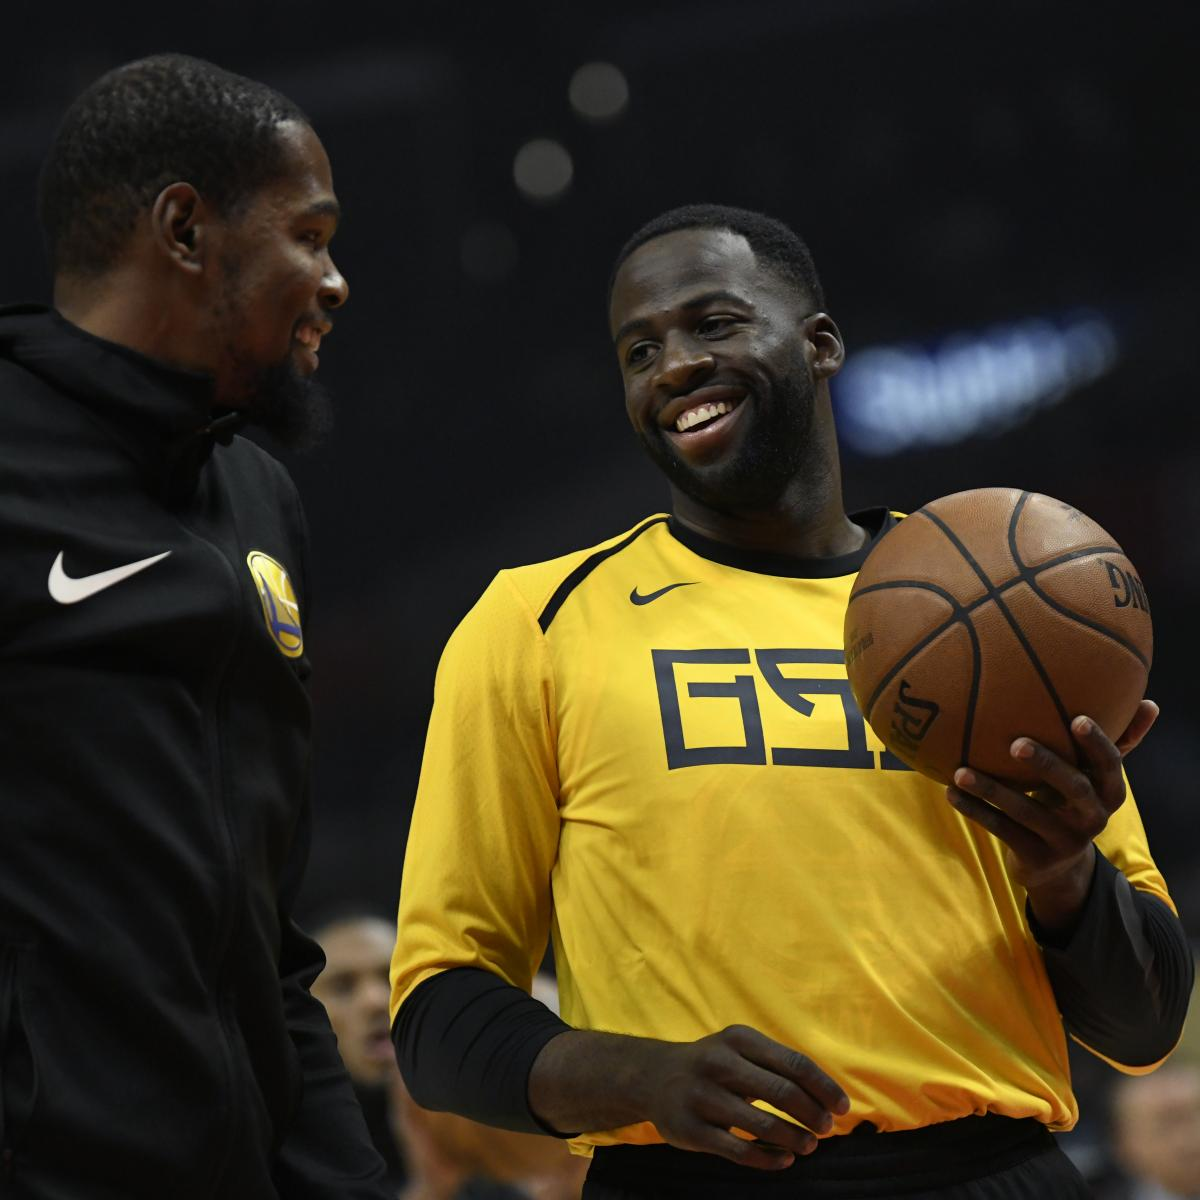 Warriors Come Out To Play Bleacher Report: B/R NBA Staff Breaks Down The Ultimate KD Vs. Draymond